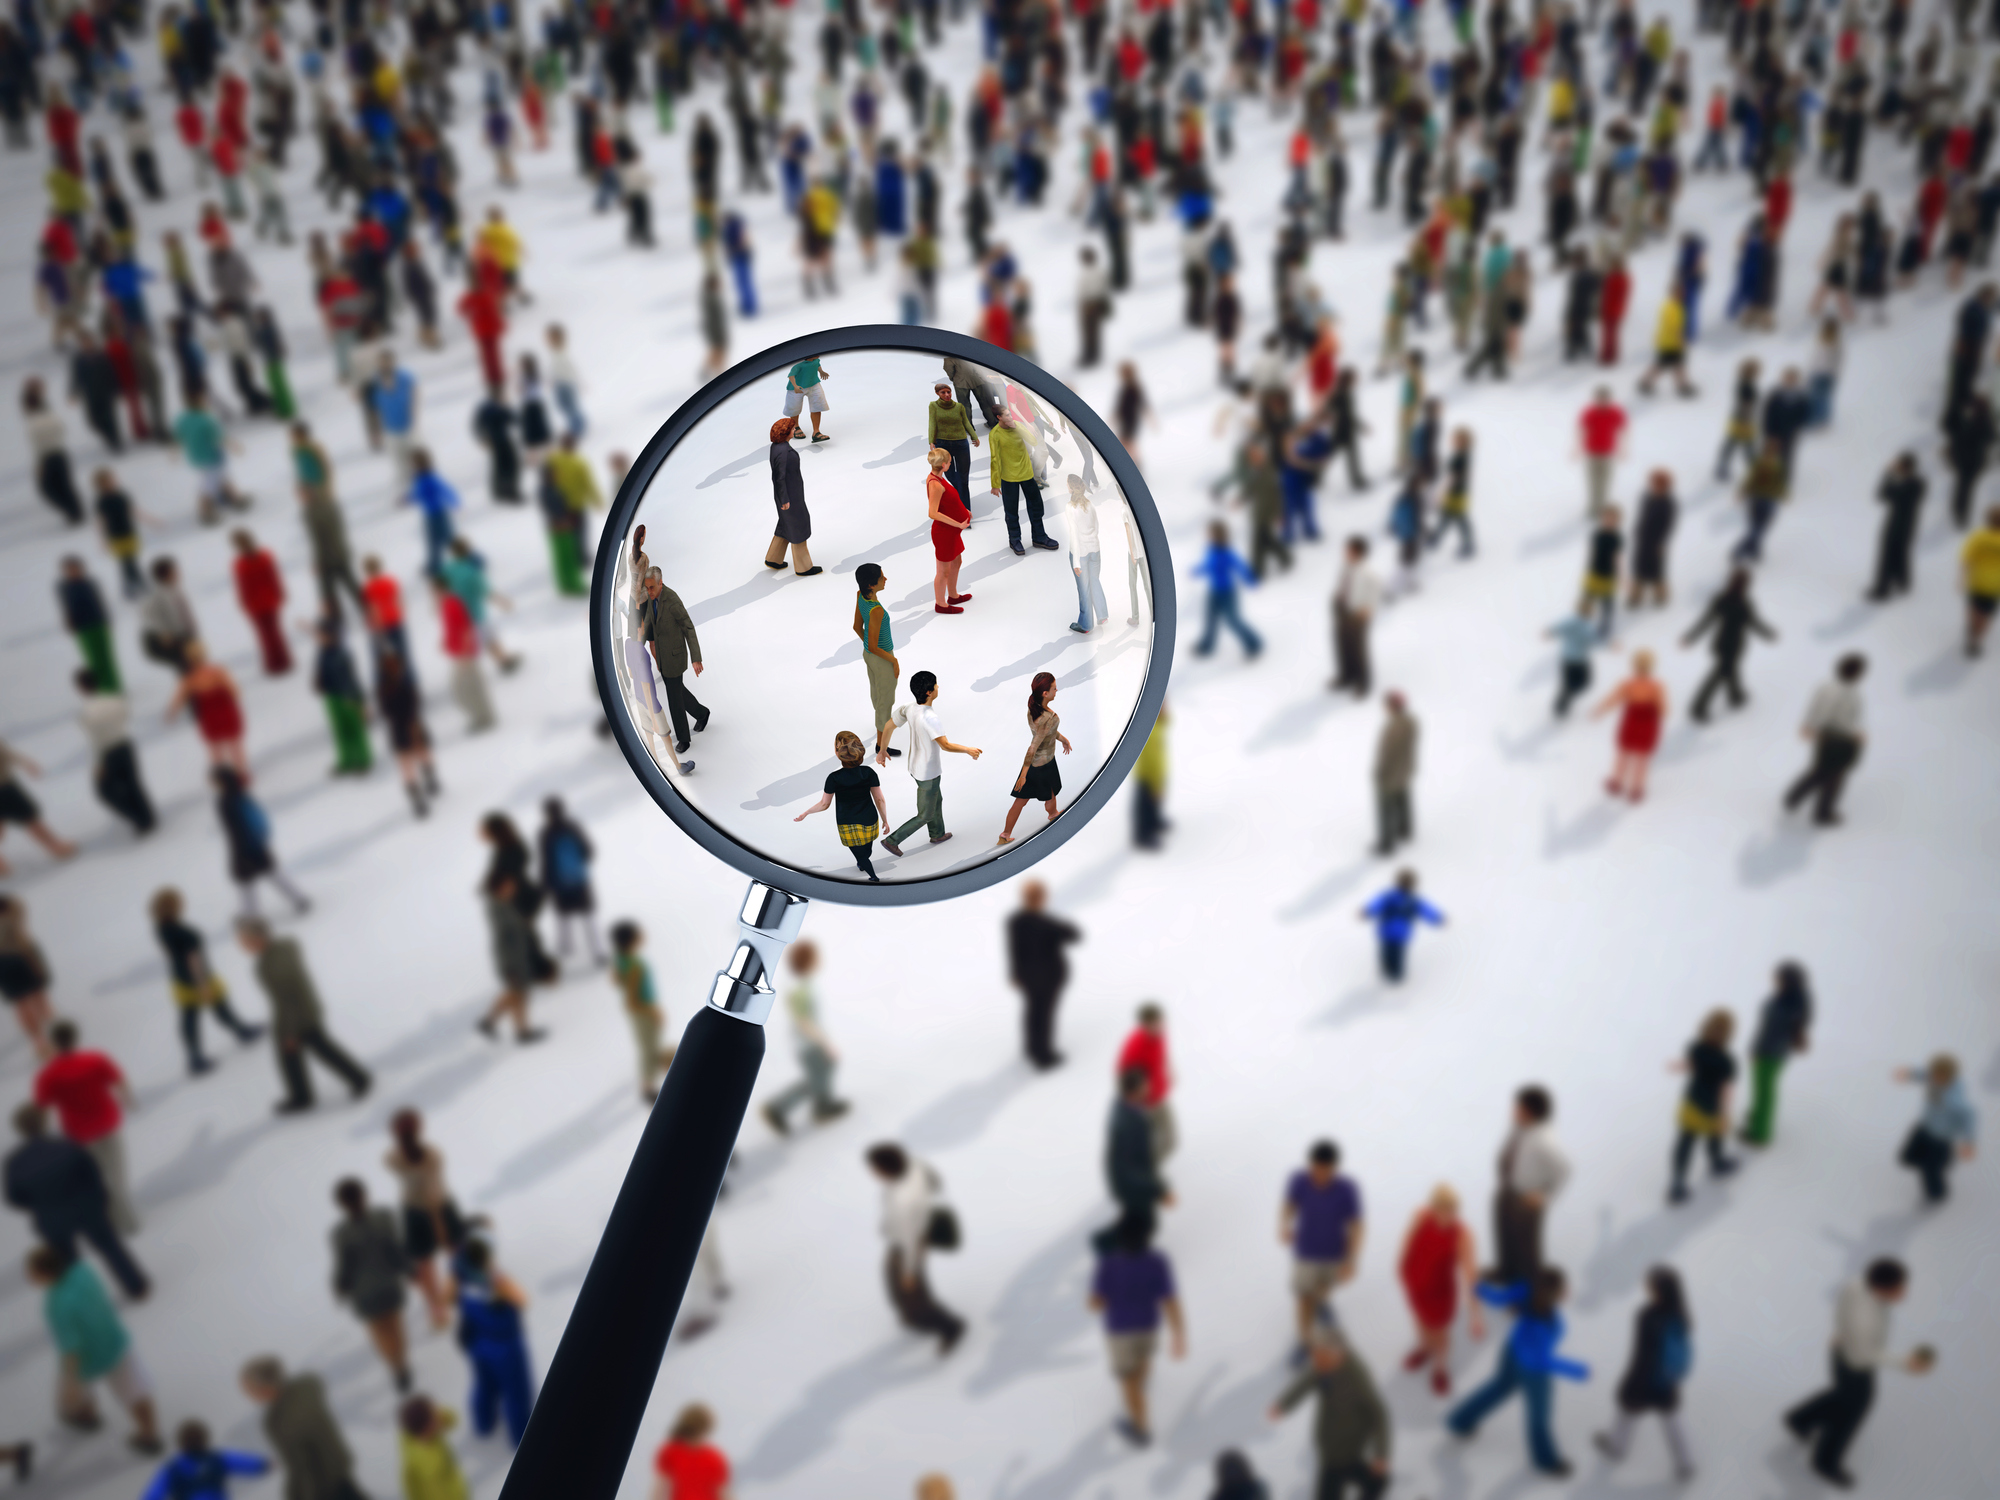 Magnifying glass on a large group of people